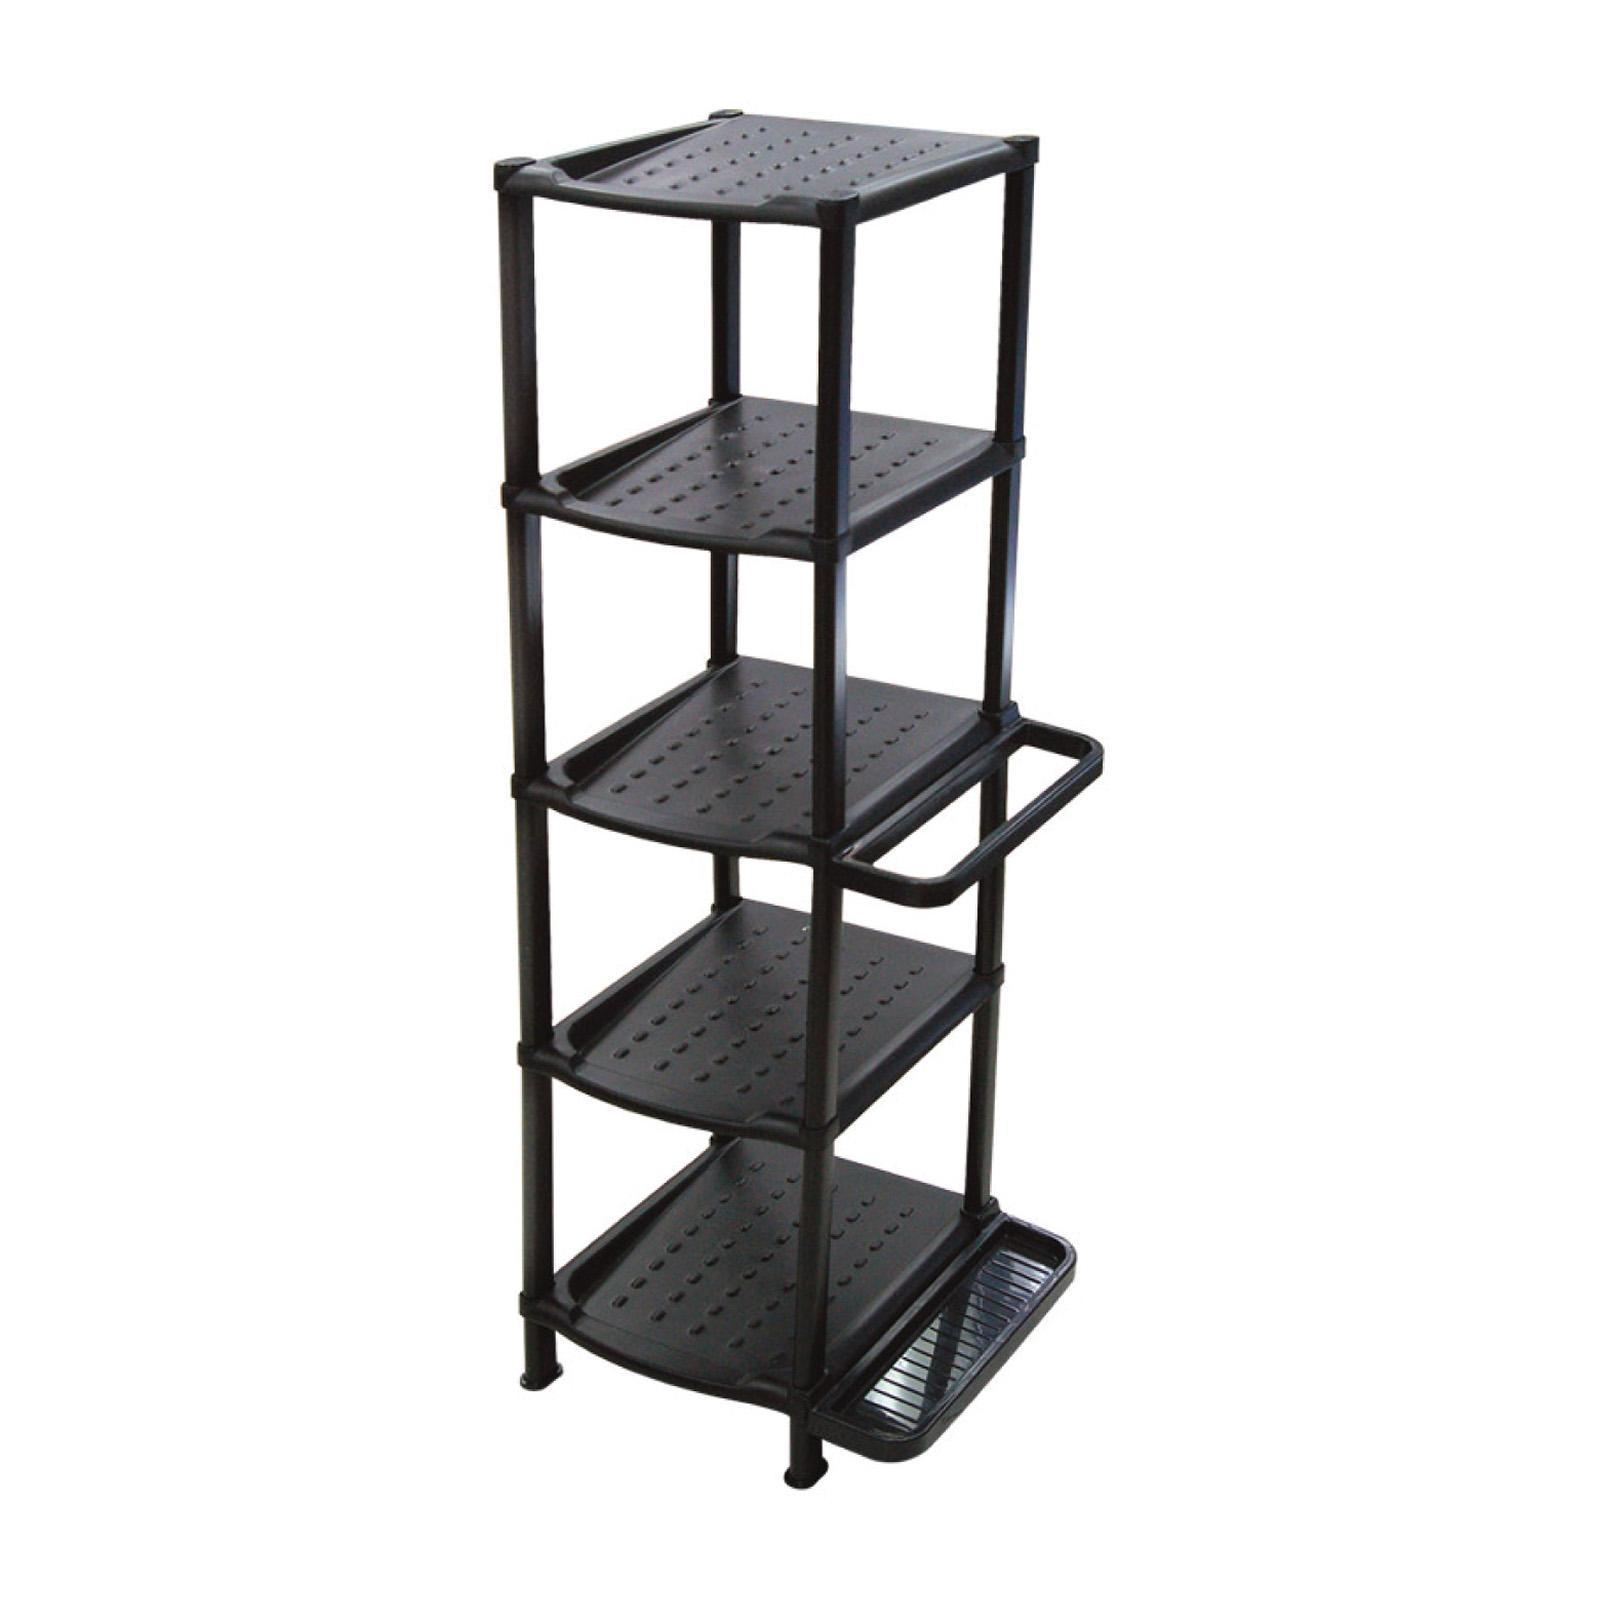 Algo Shoe Rack 5 Tier